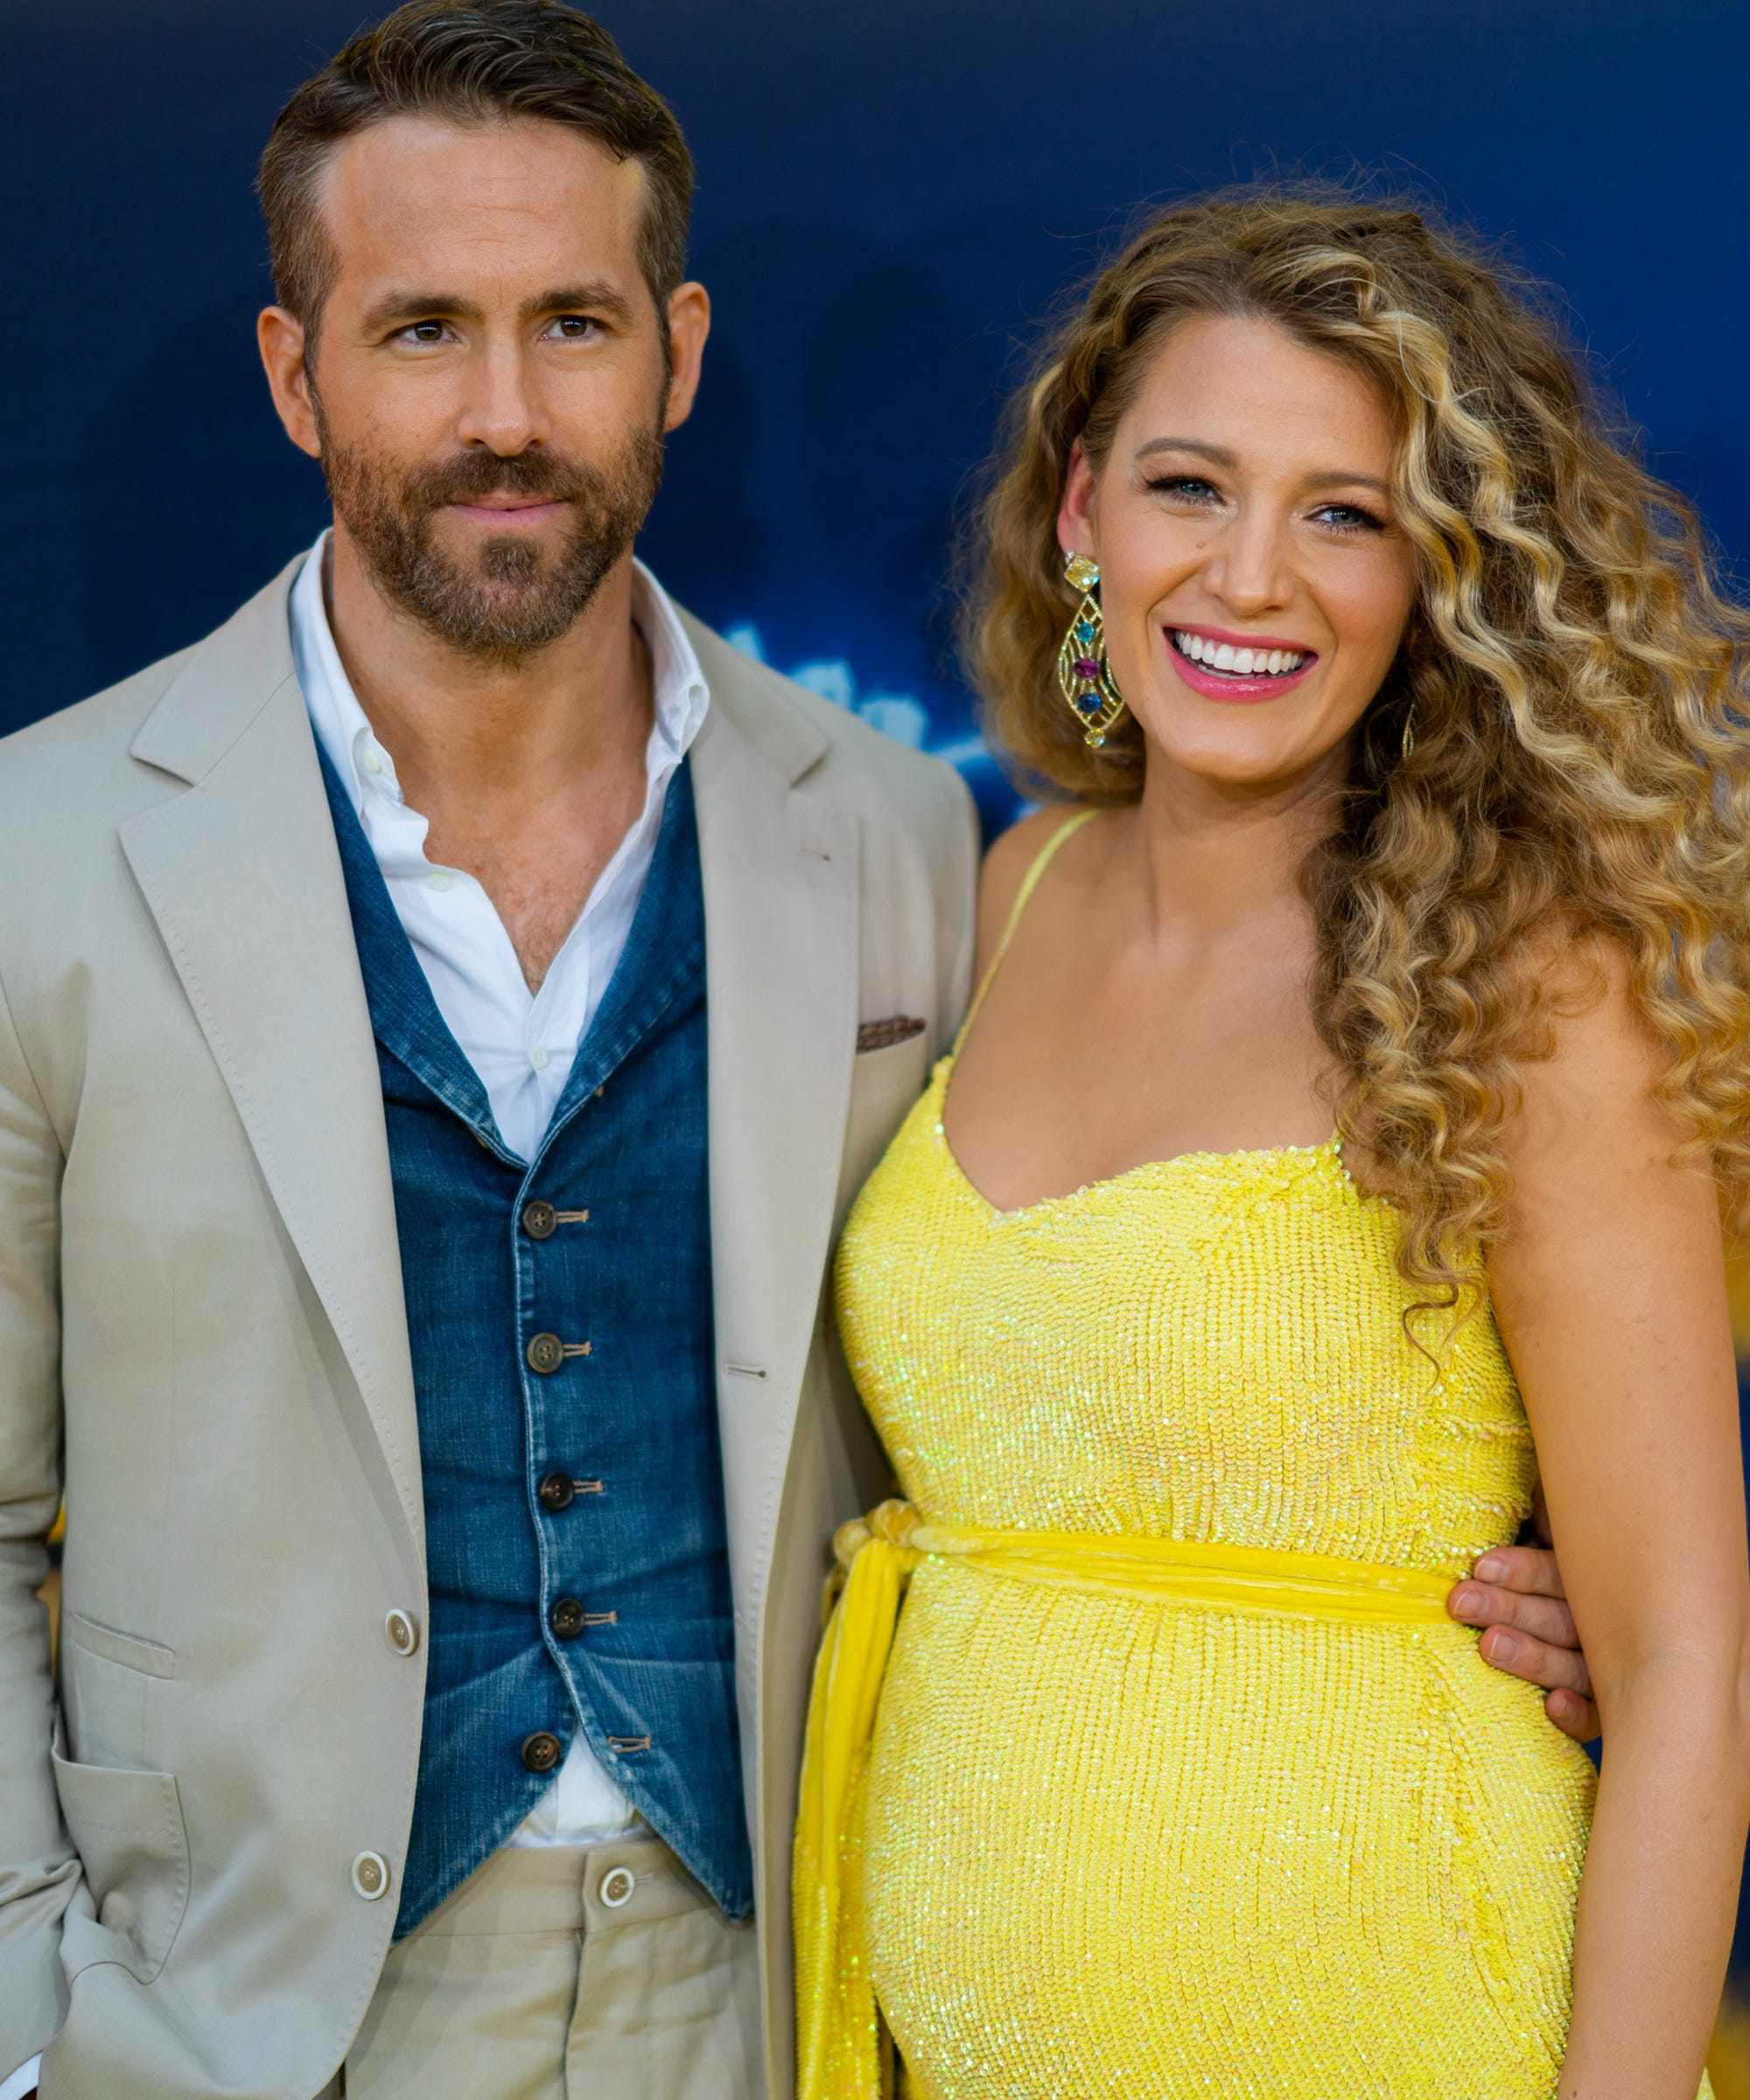 Ryan Reynolds Just Gave Blake Lively The Worst Birthday Gift